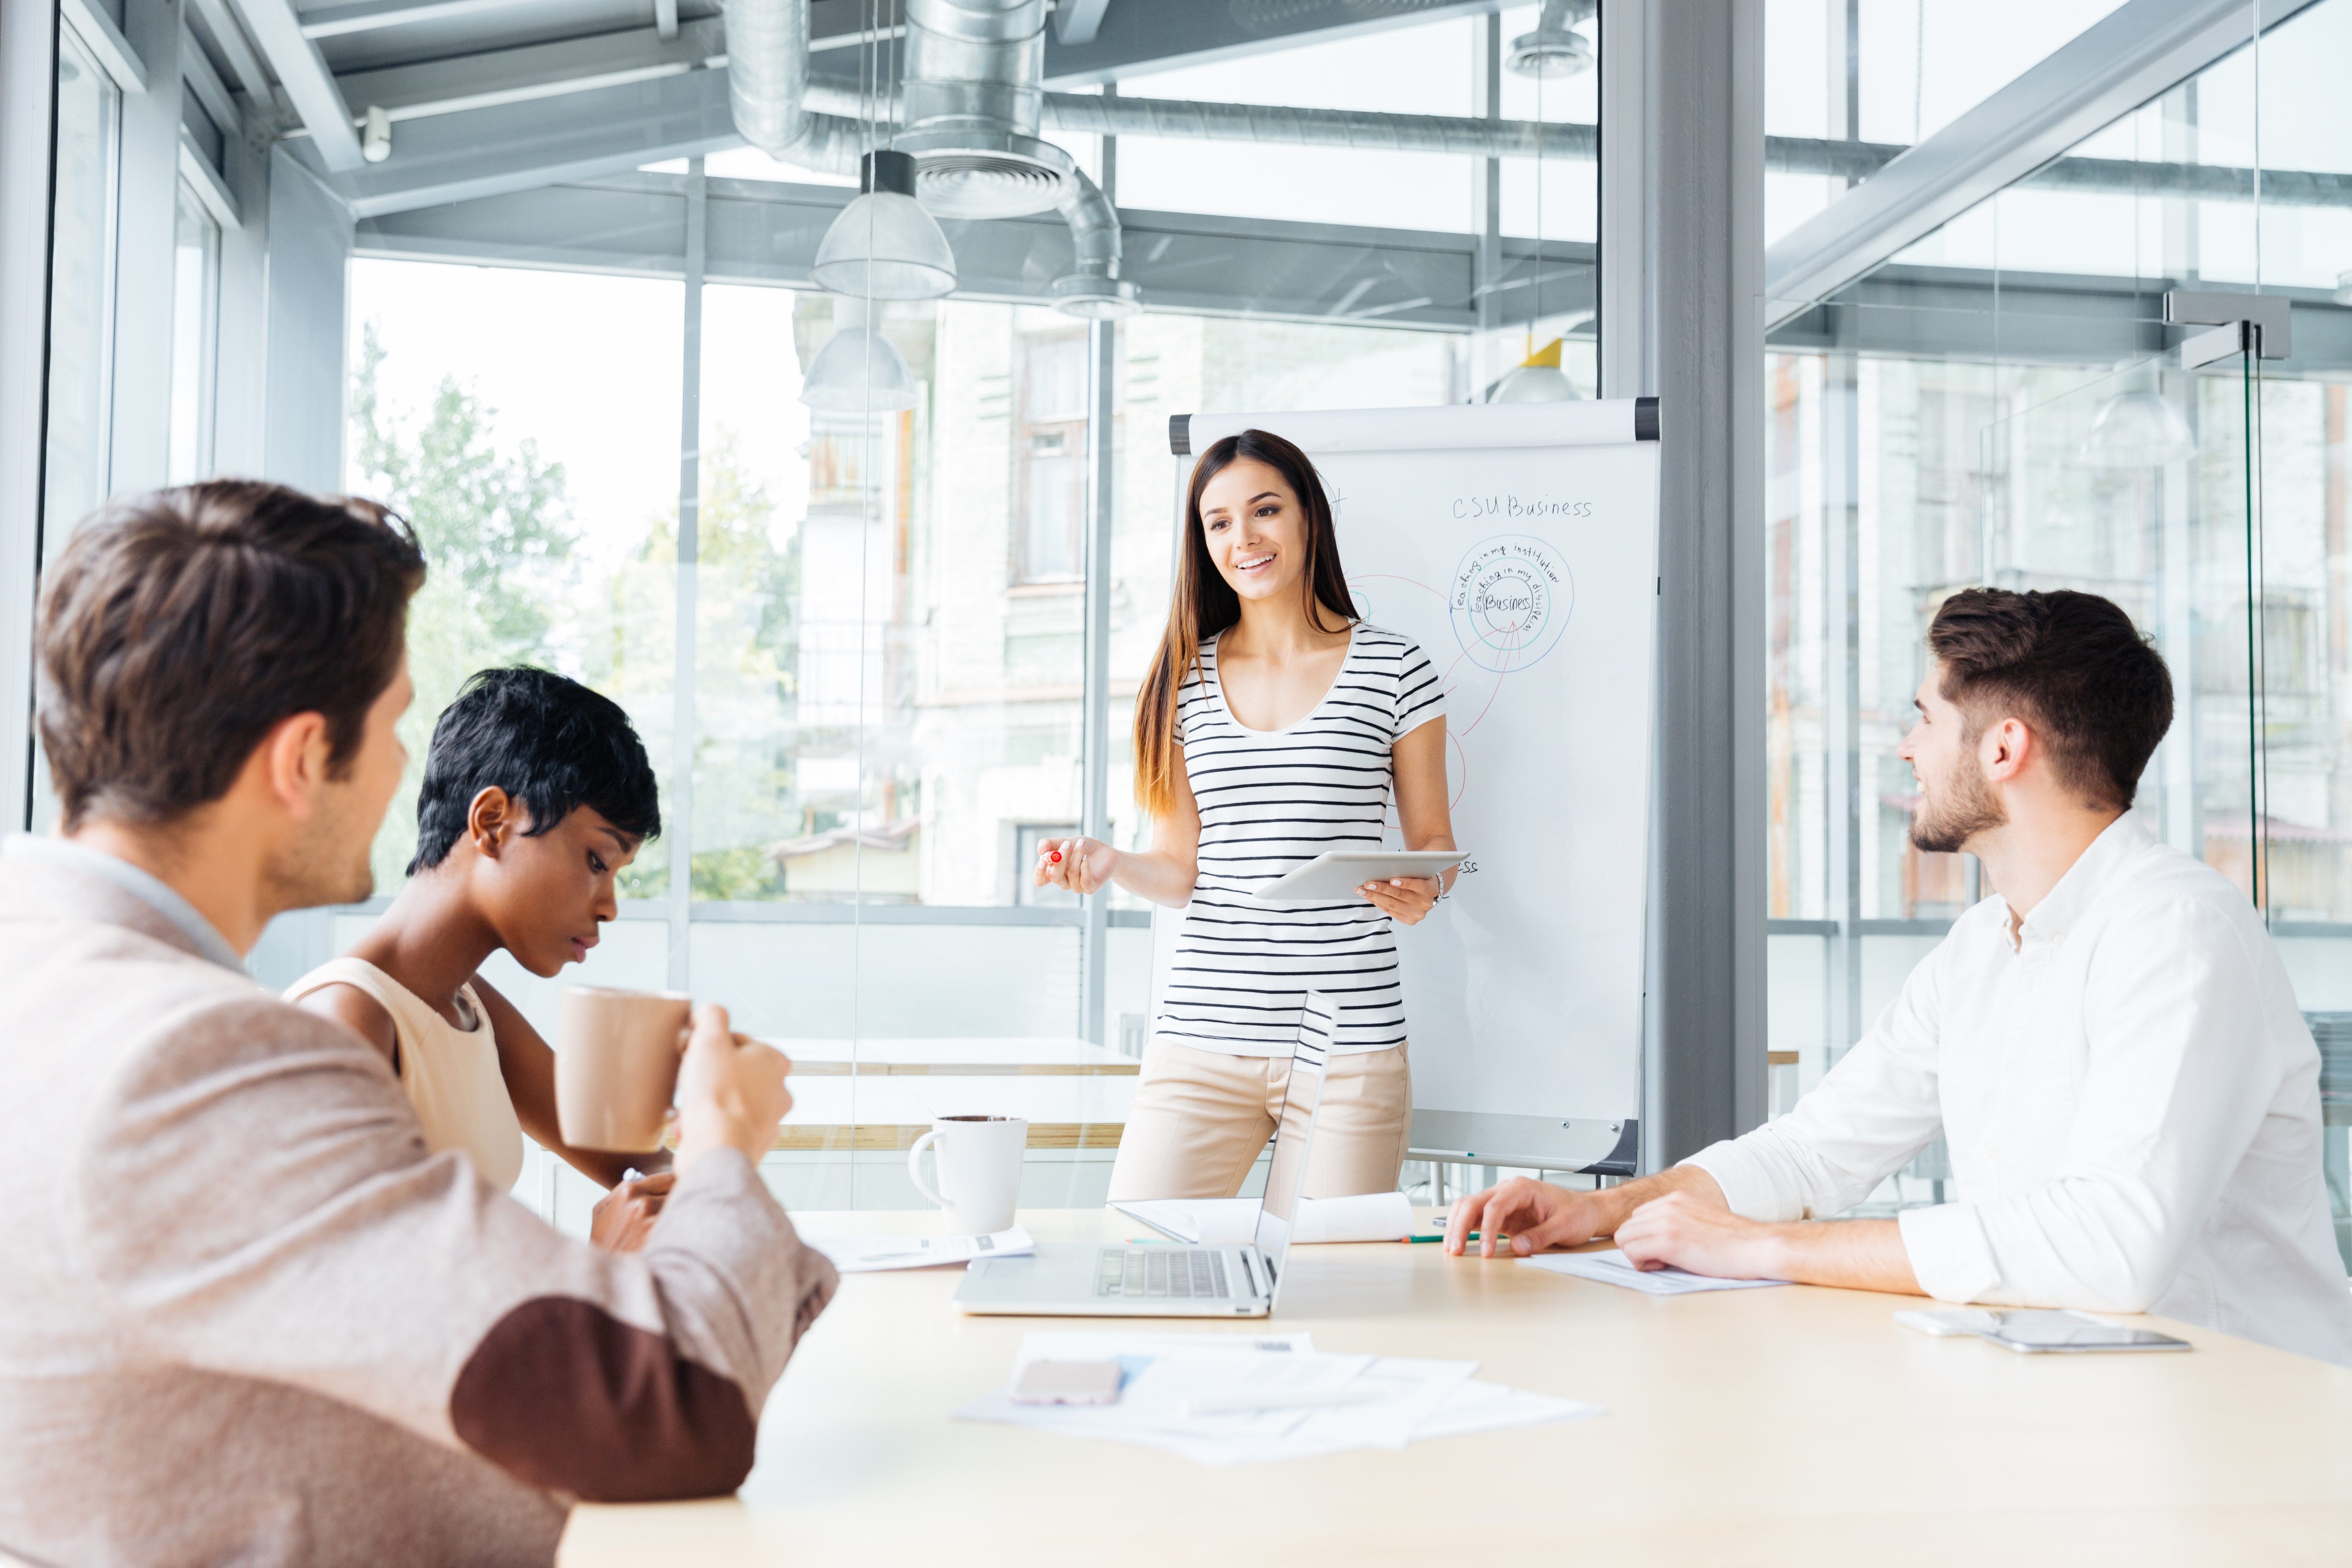 4 Steps to Becoming More Confident at Work and Why It Matters